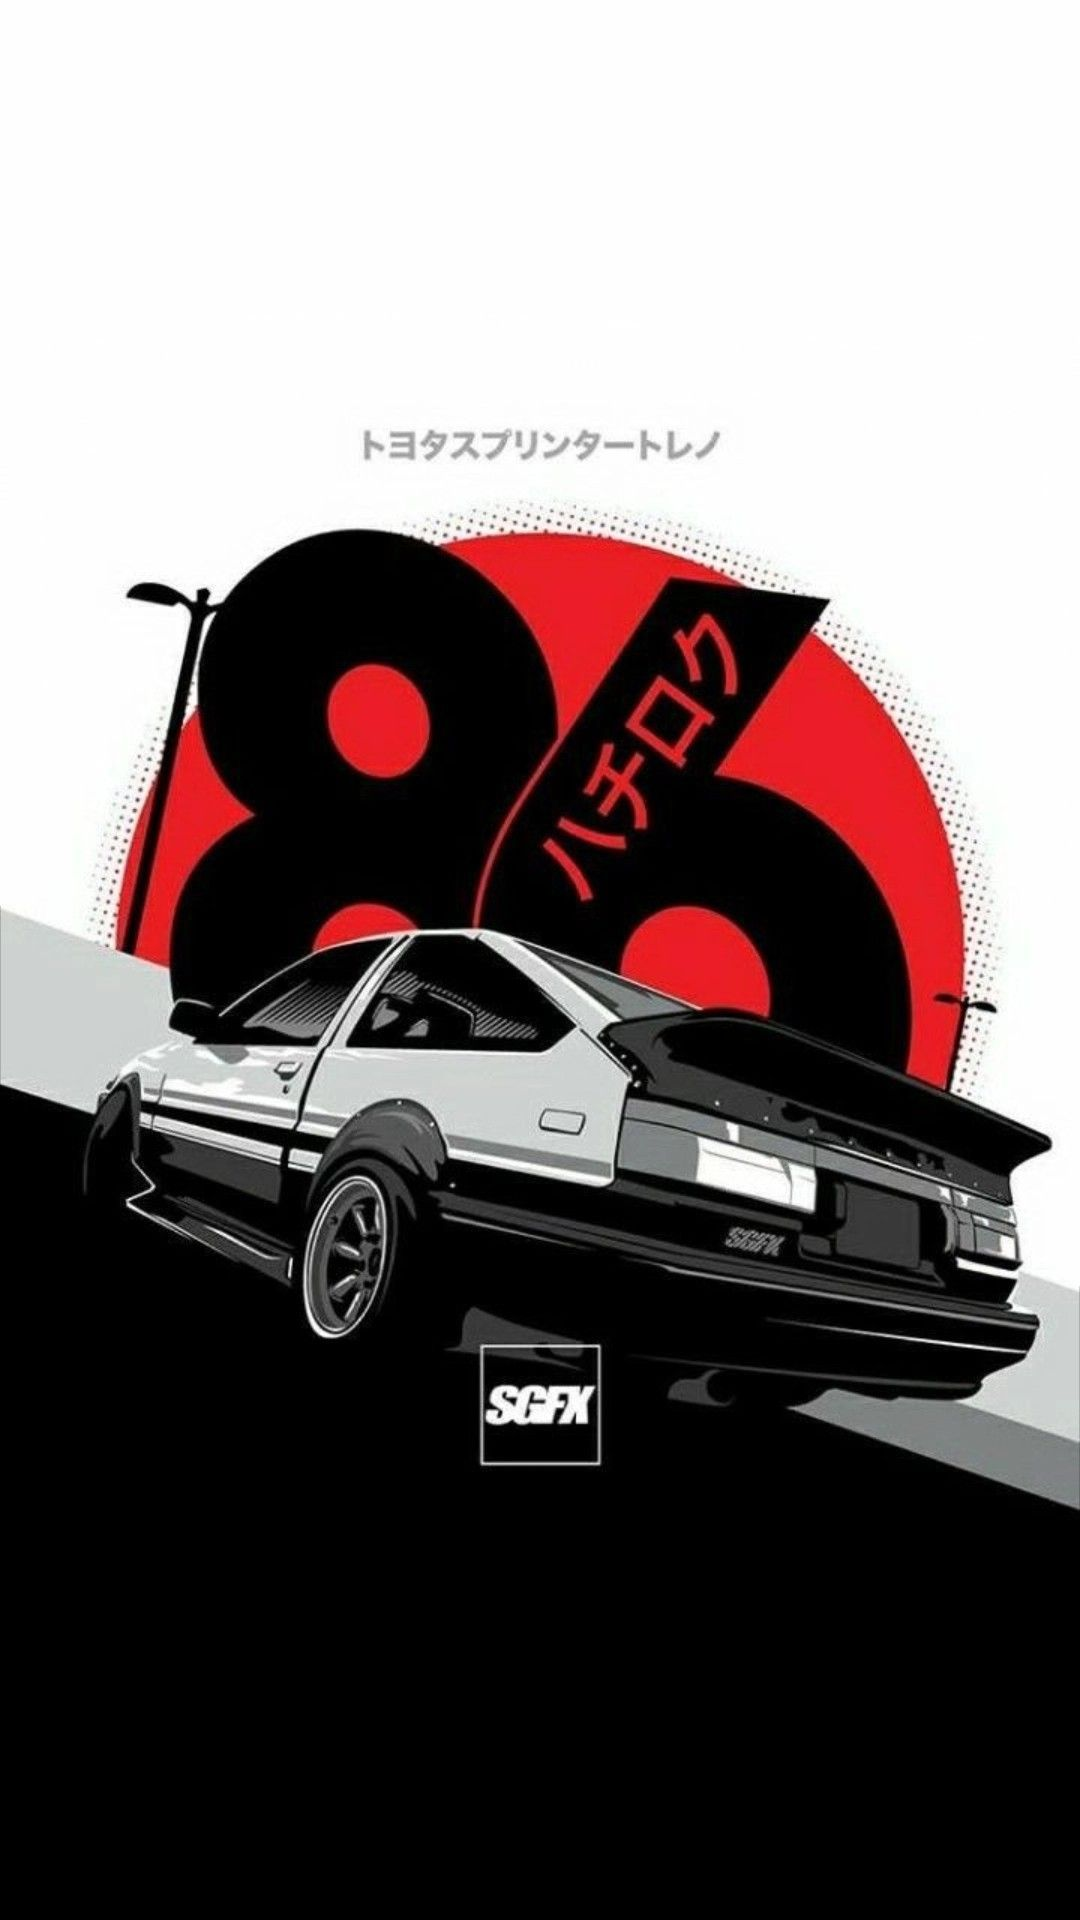 Jdm Iphone Wallpapers Top Free Jdm Iphone Backgrounds Wallpaperaccess